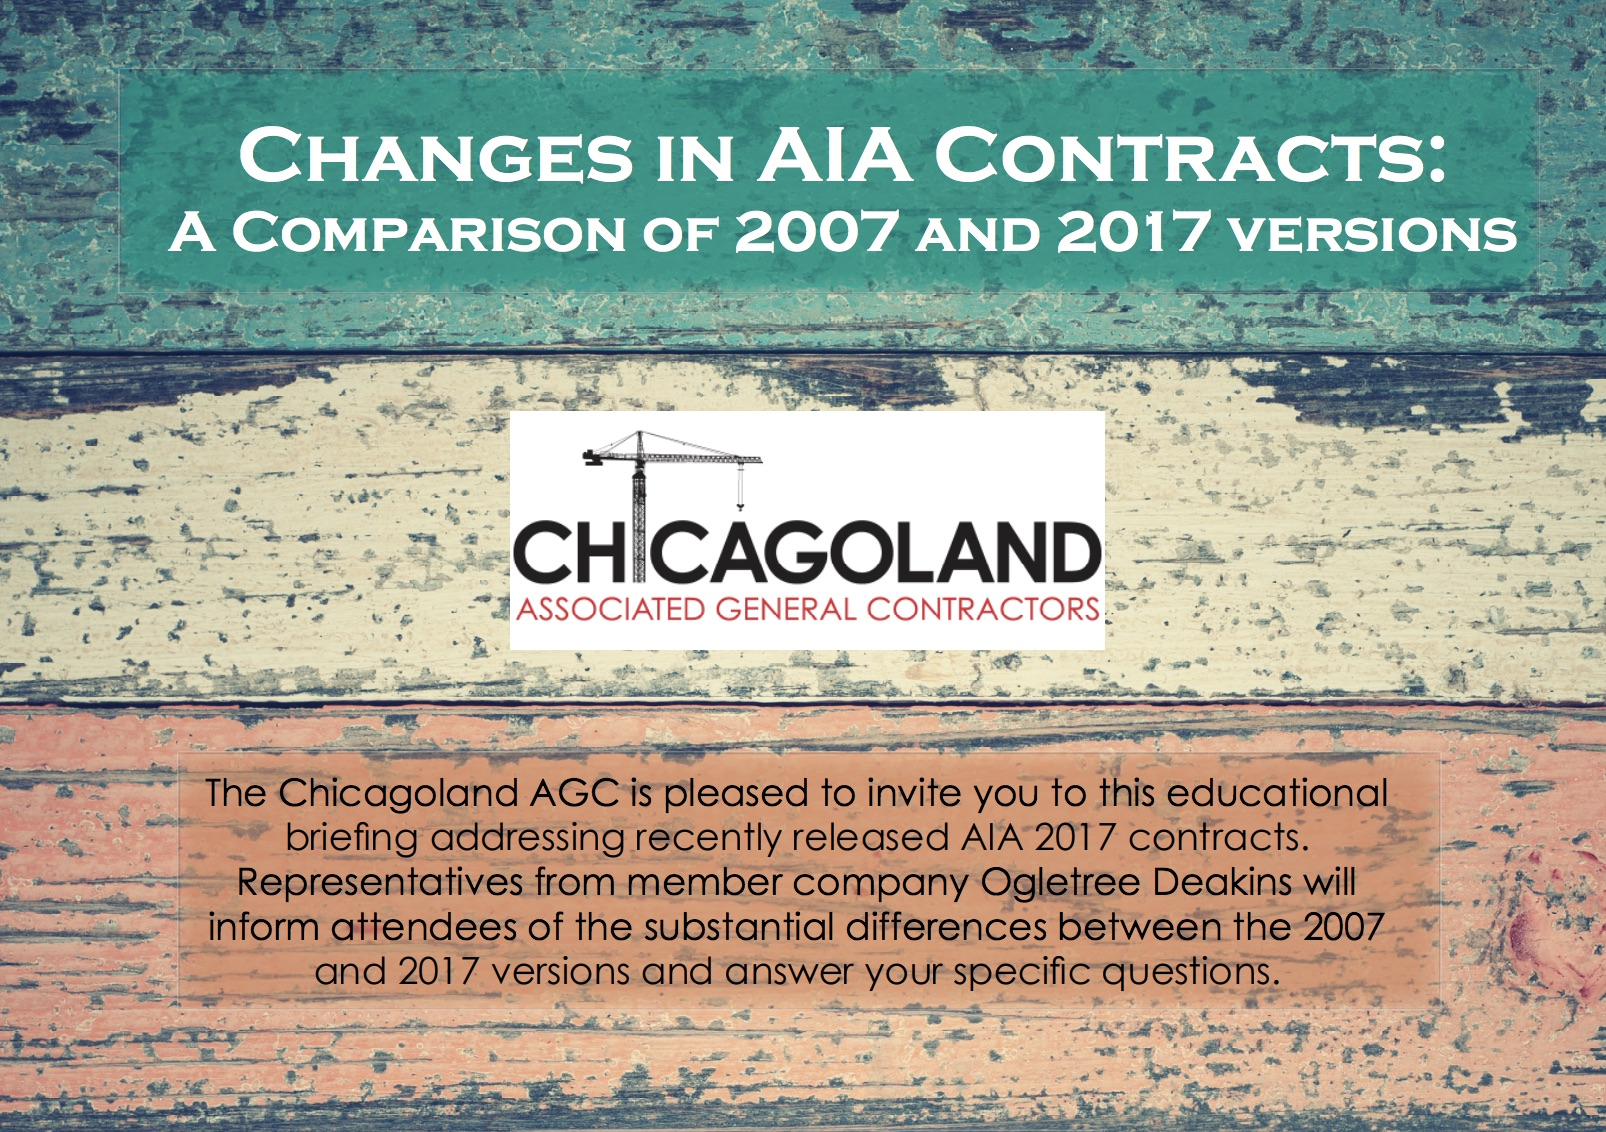 CAGC schedules briefing on new 2017 AIA contracts | Chicago